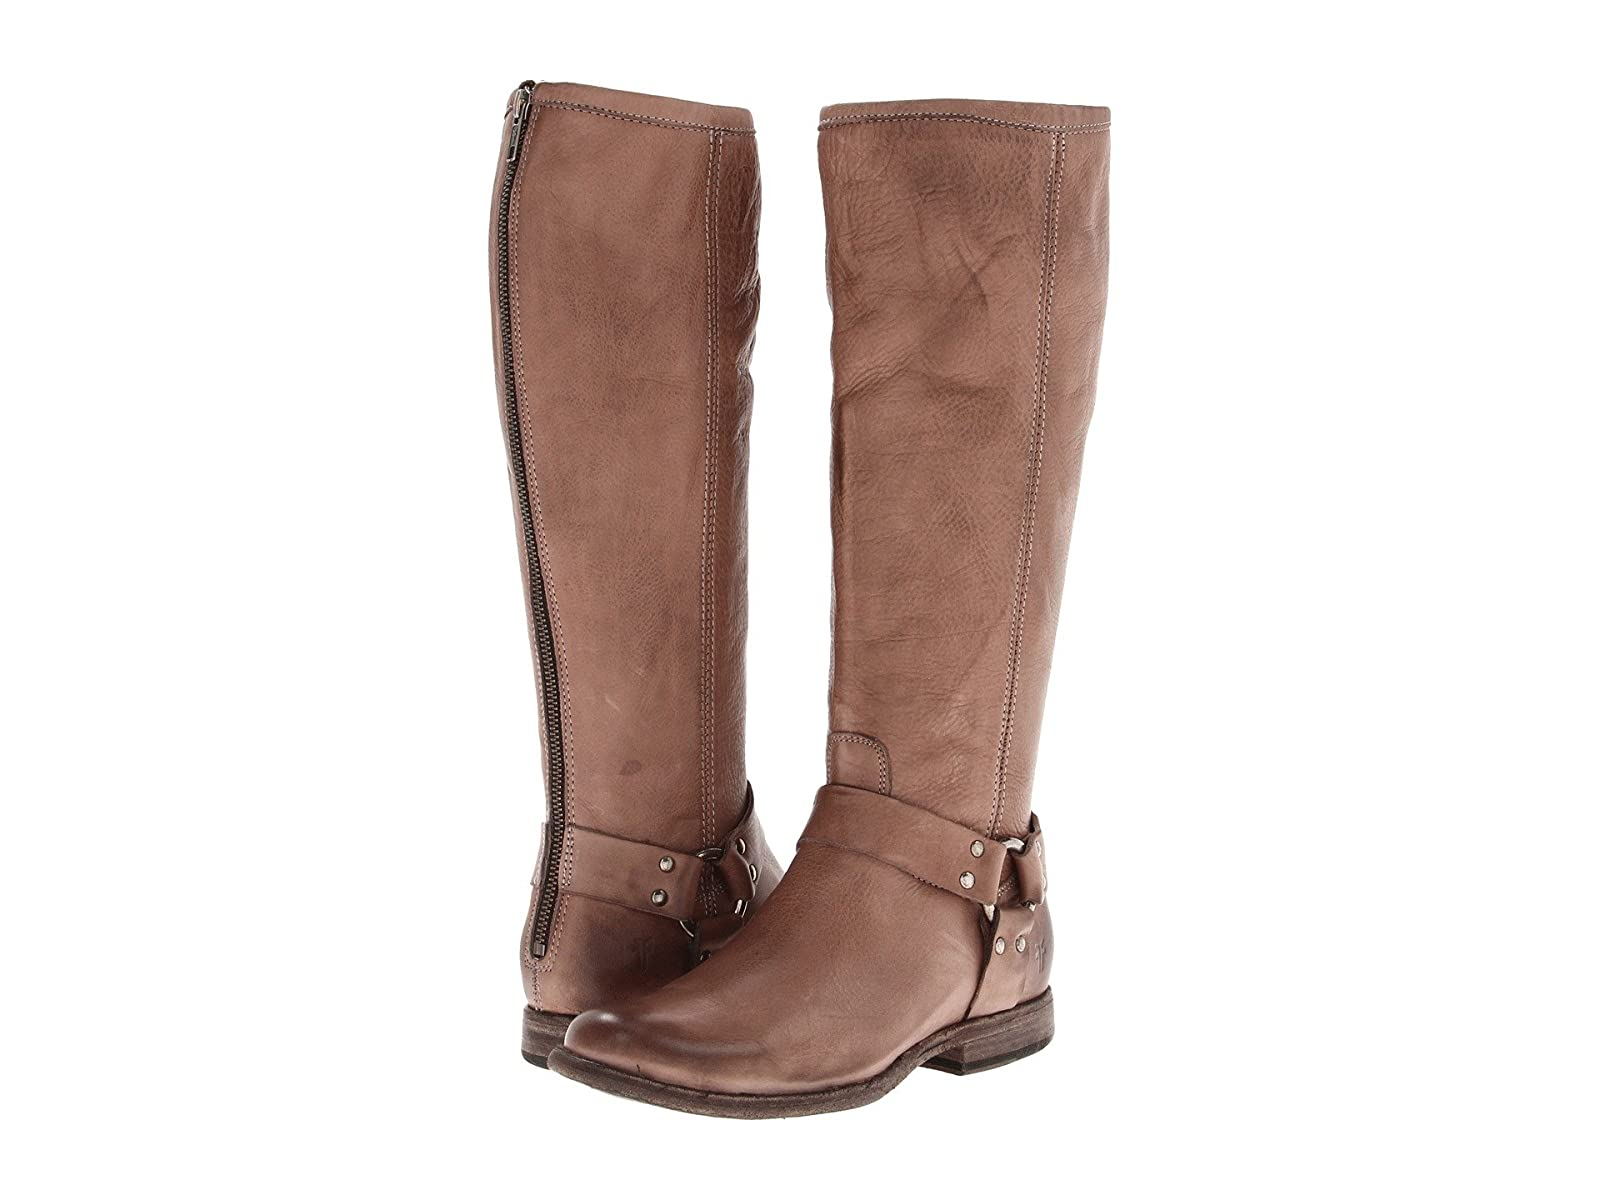 Frye Phillip Harness TallCheap and distinctive eye-catching shoes